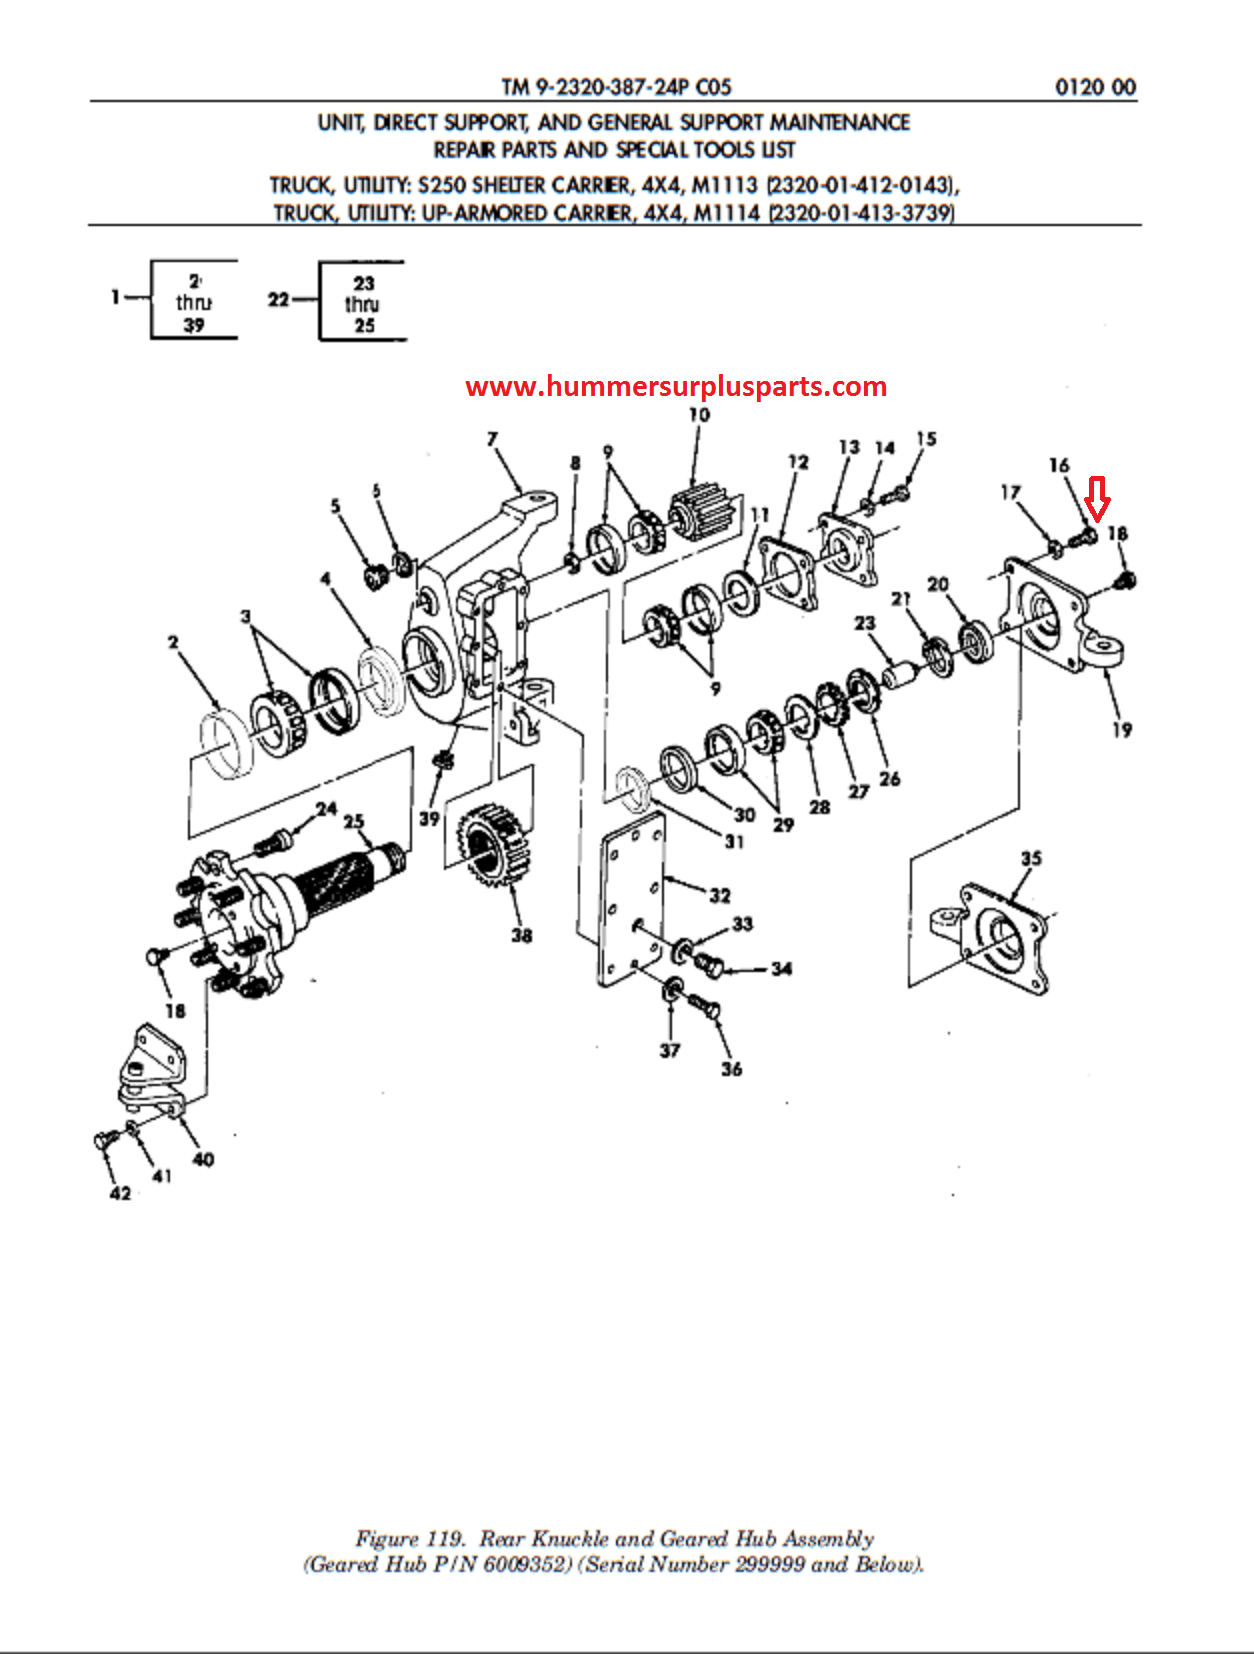 M998 Wiring Diagram H1 Wiring Diagram Wiring Diagram ~ ODICIS